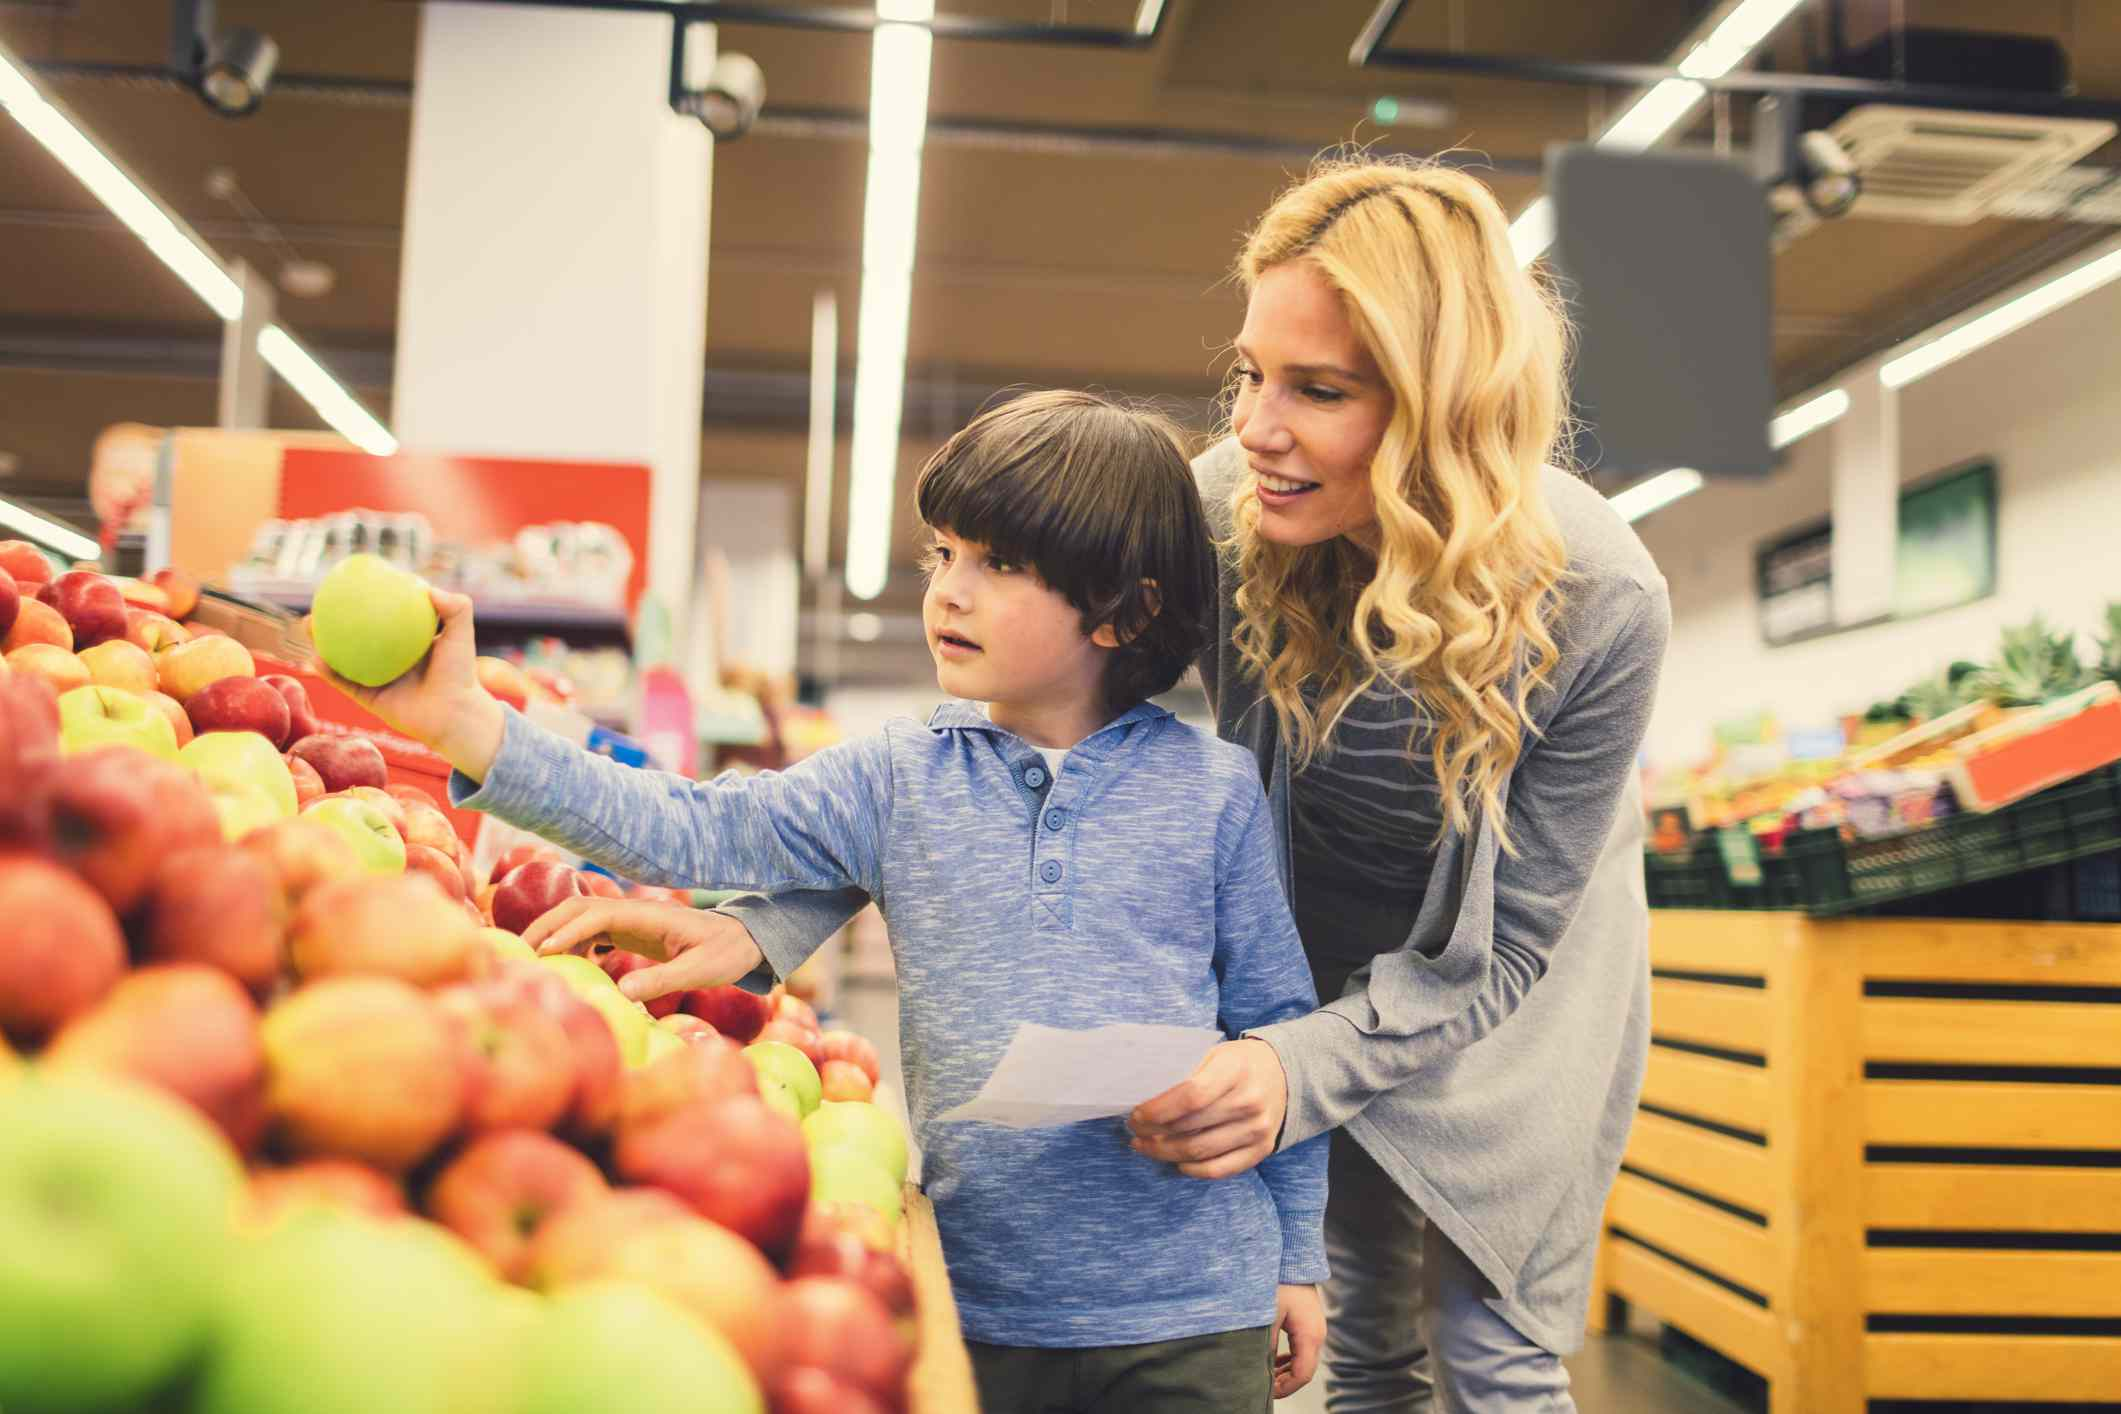 Mother and son picking out apples at the grocery store